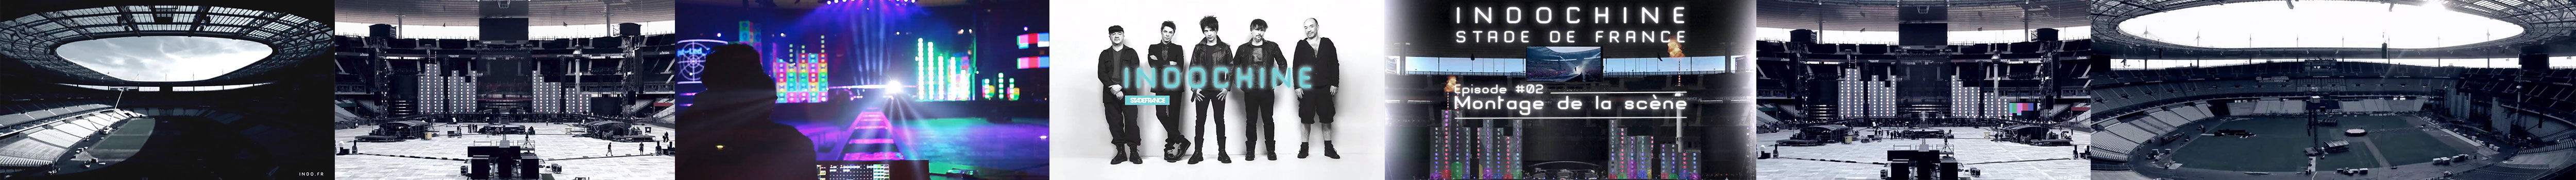 indochine-stade-de-france